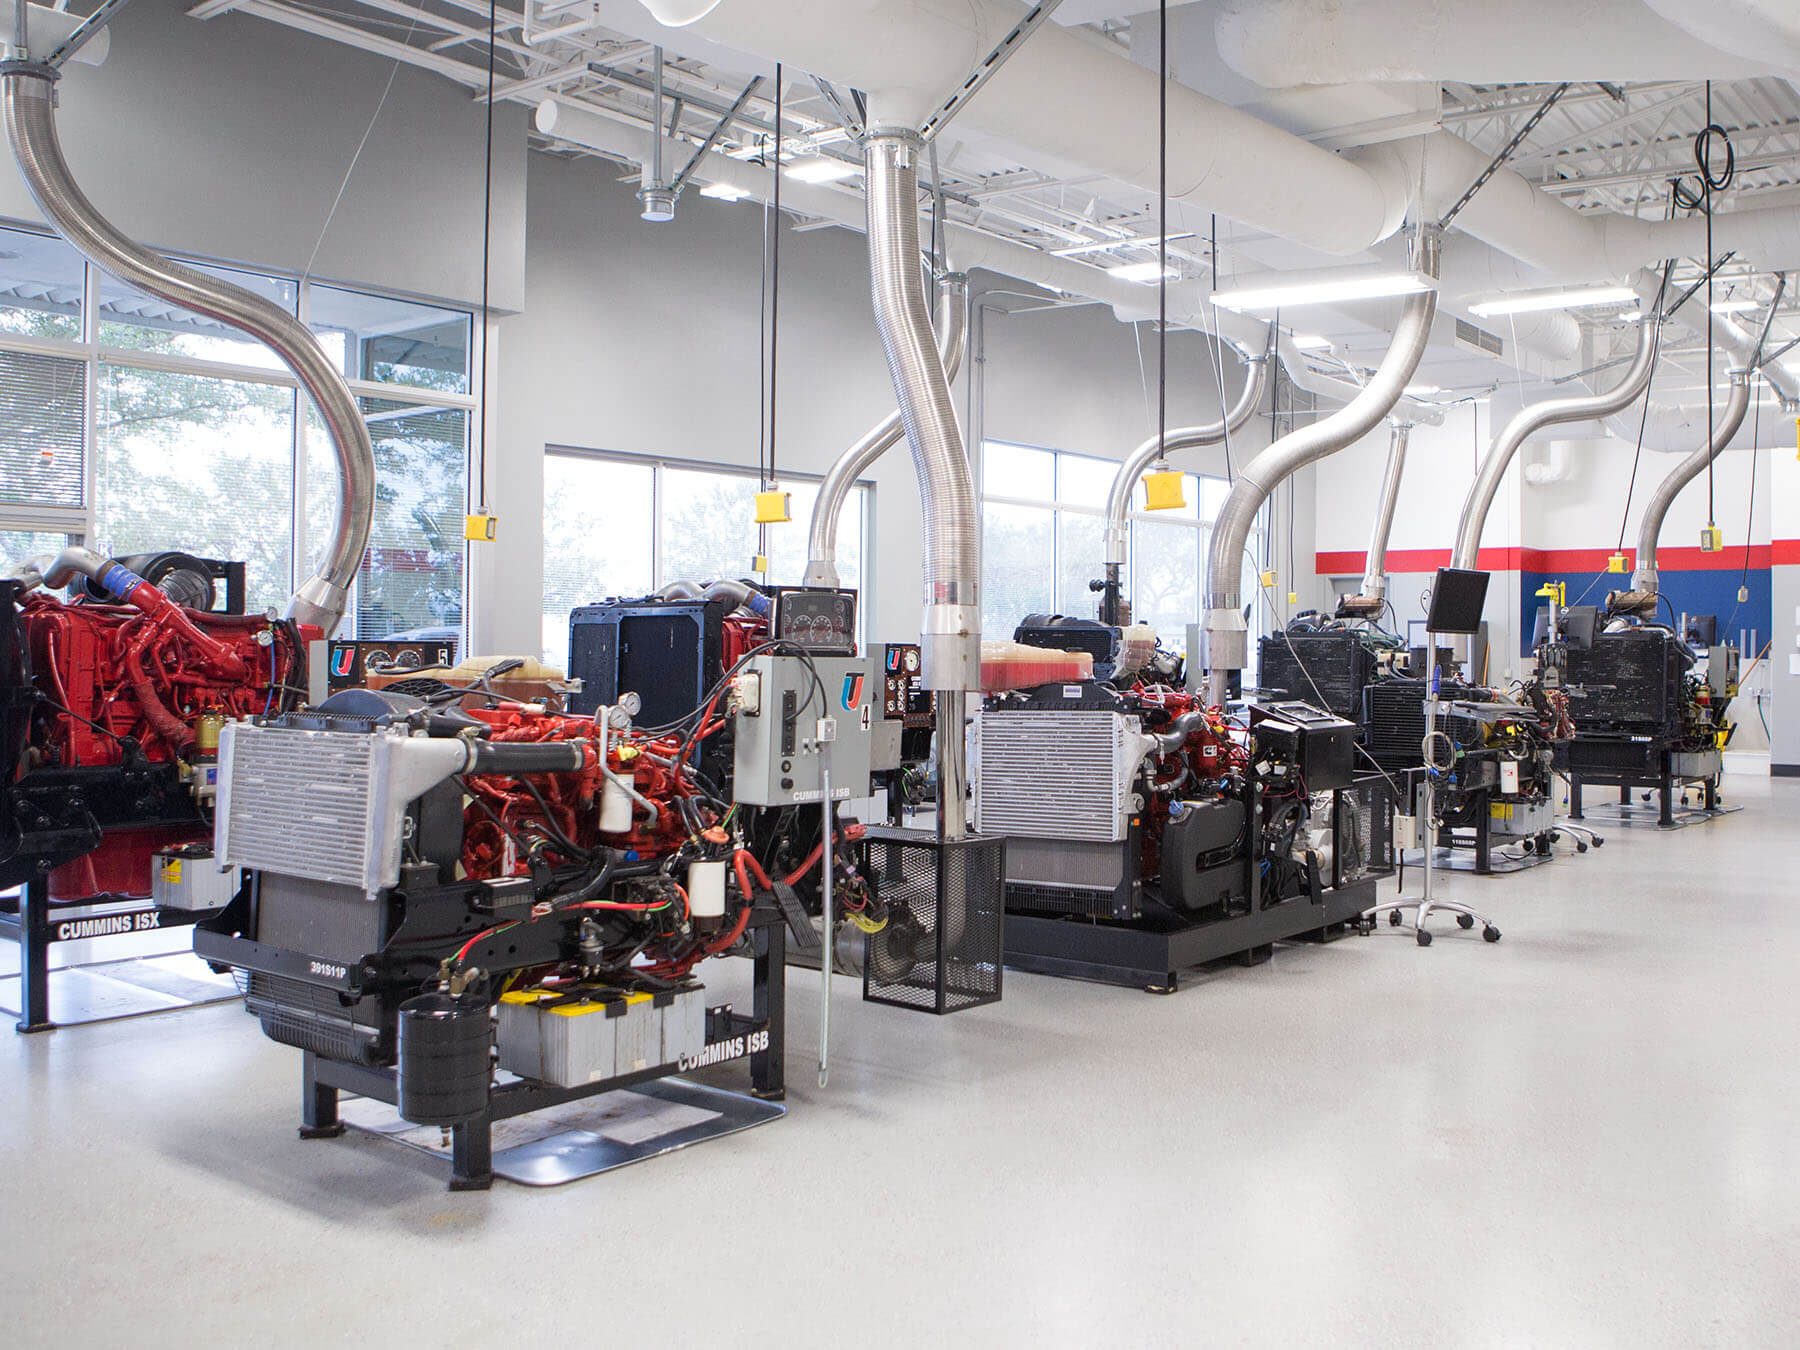 Wide angle photo of Diesel engines in the diesel lab